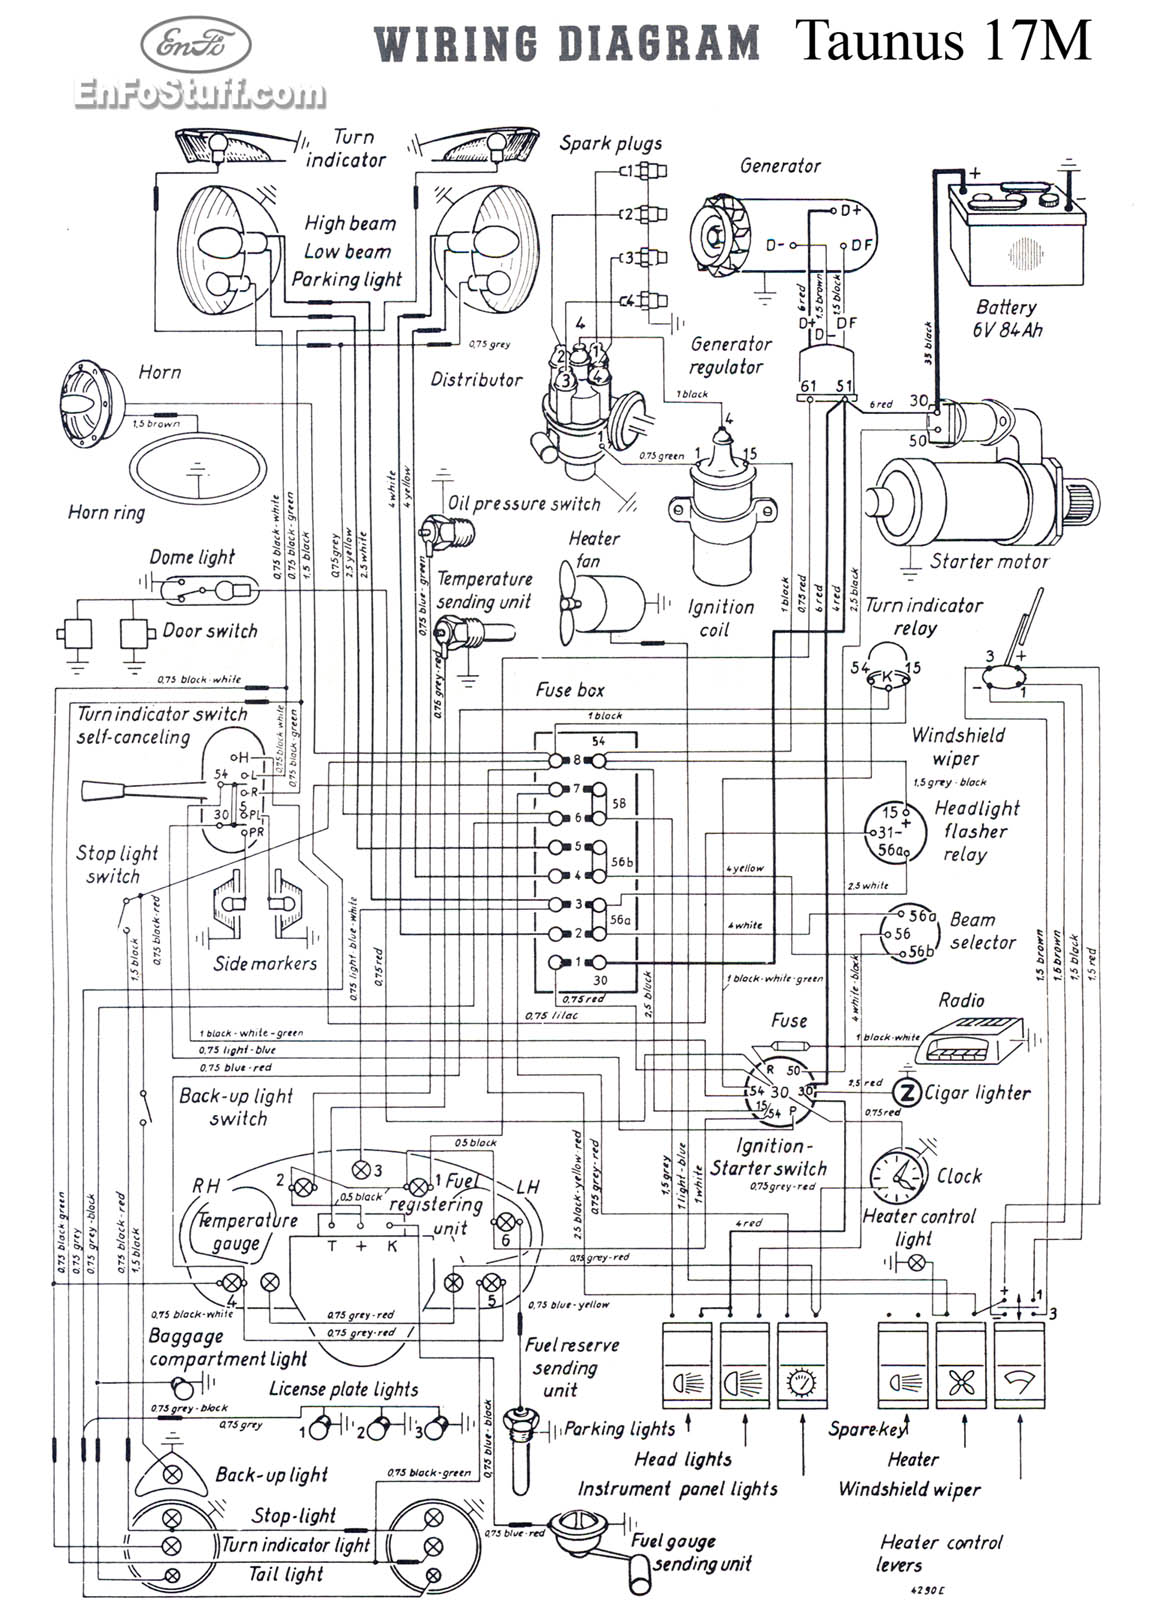 Wiring Diagrams (Schematics)